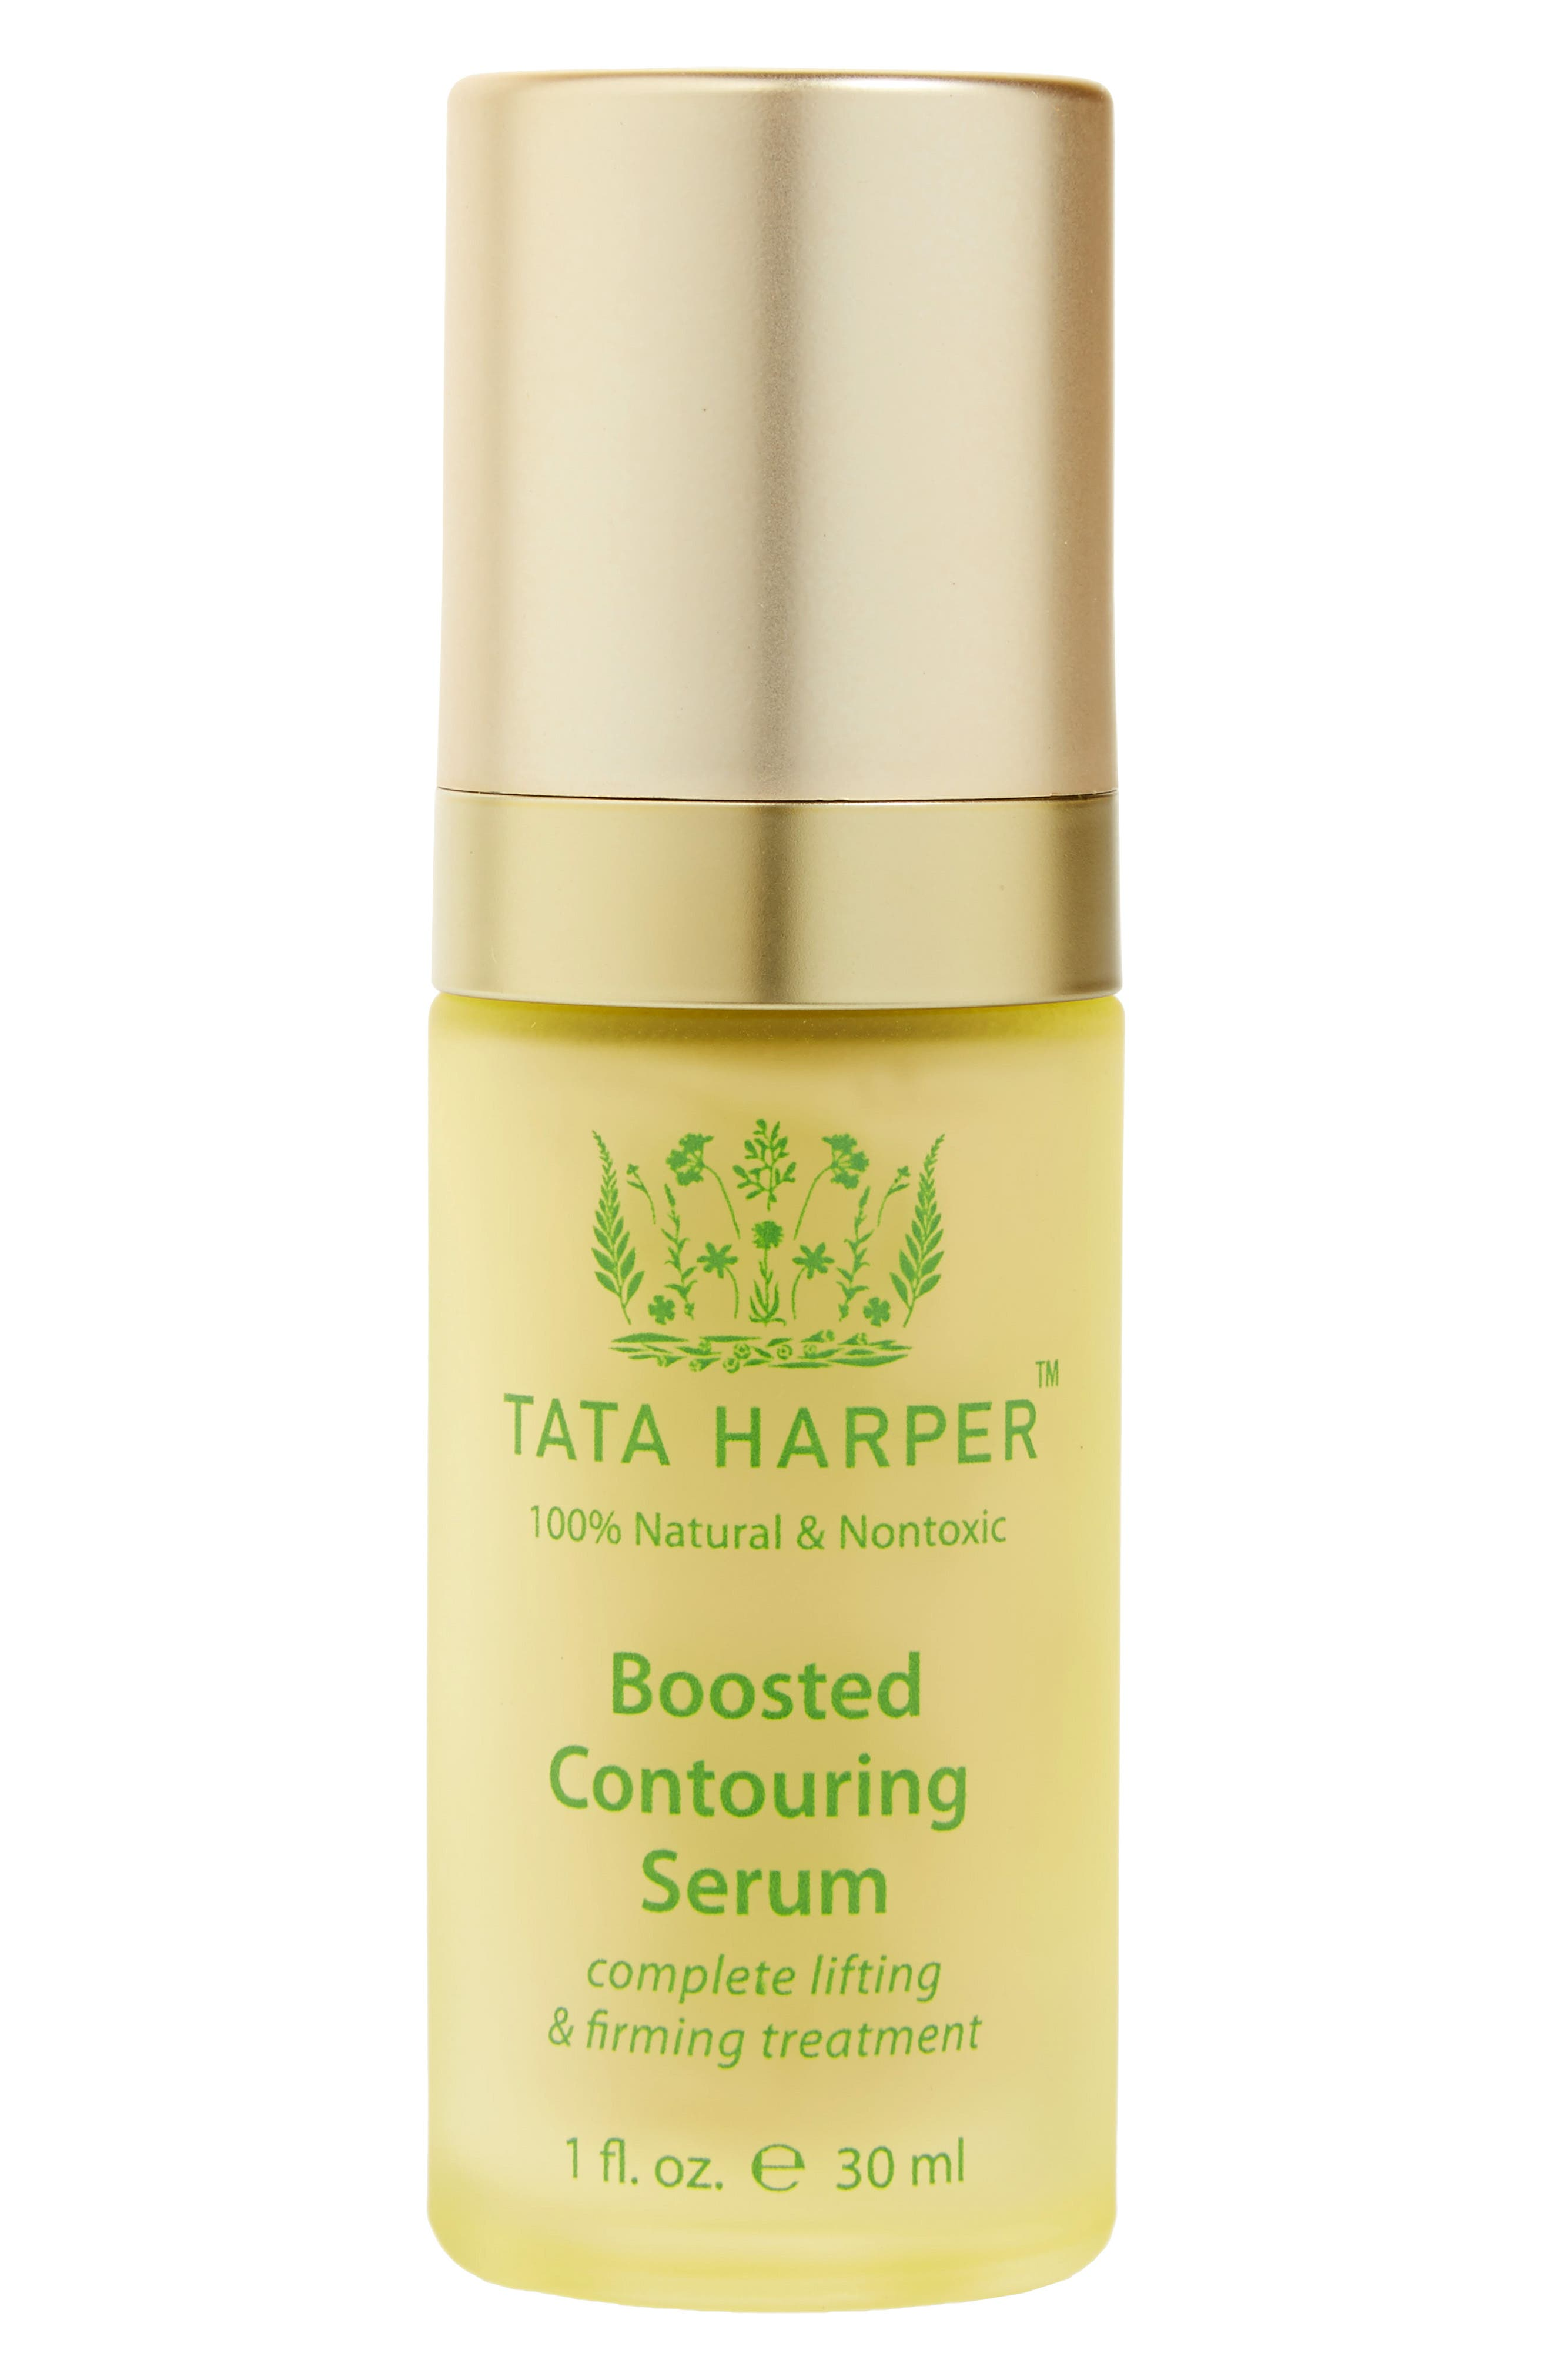 Boosted Contouring Serum by tata harper #2